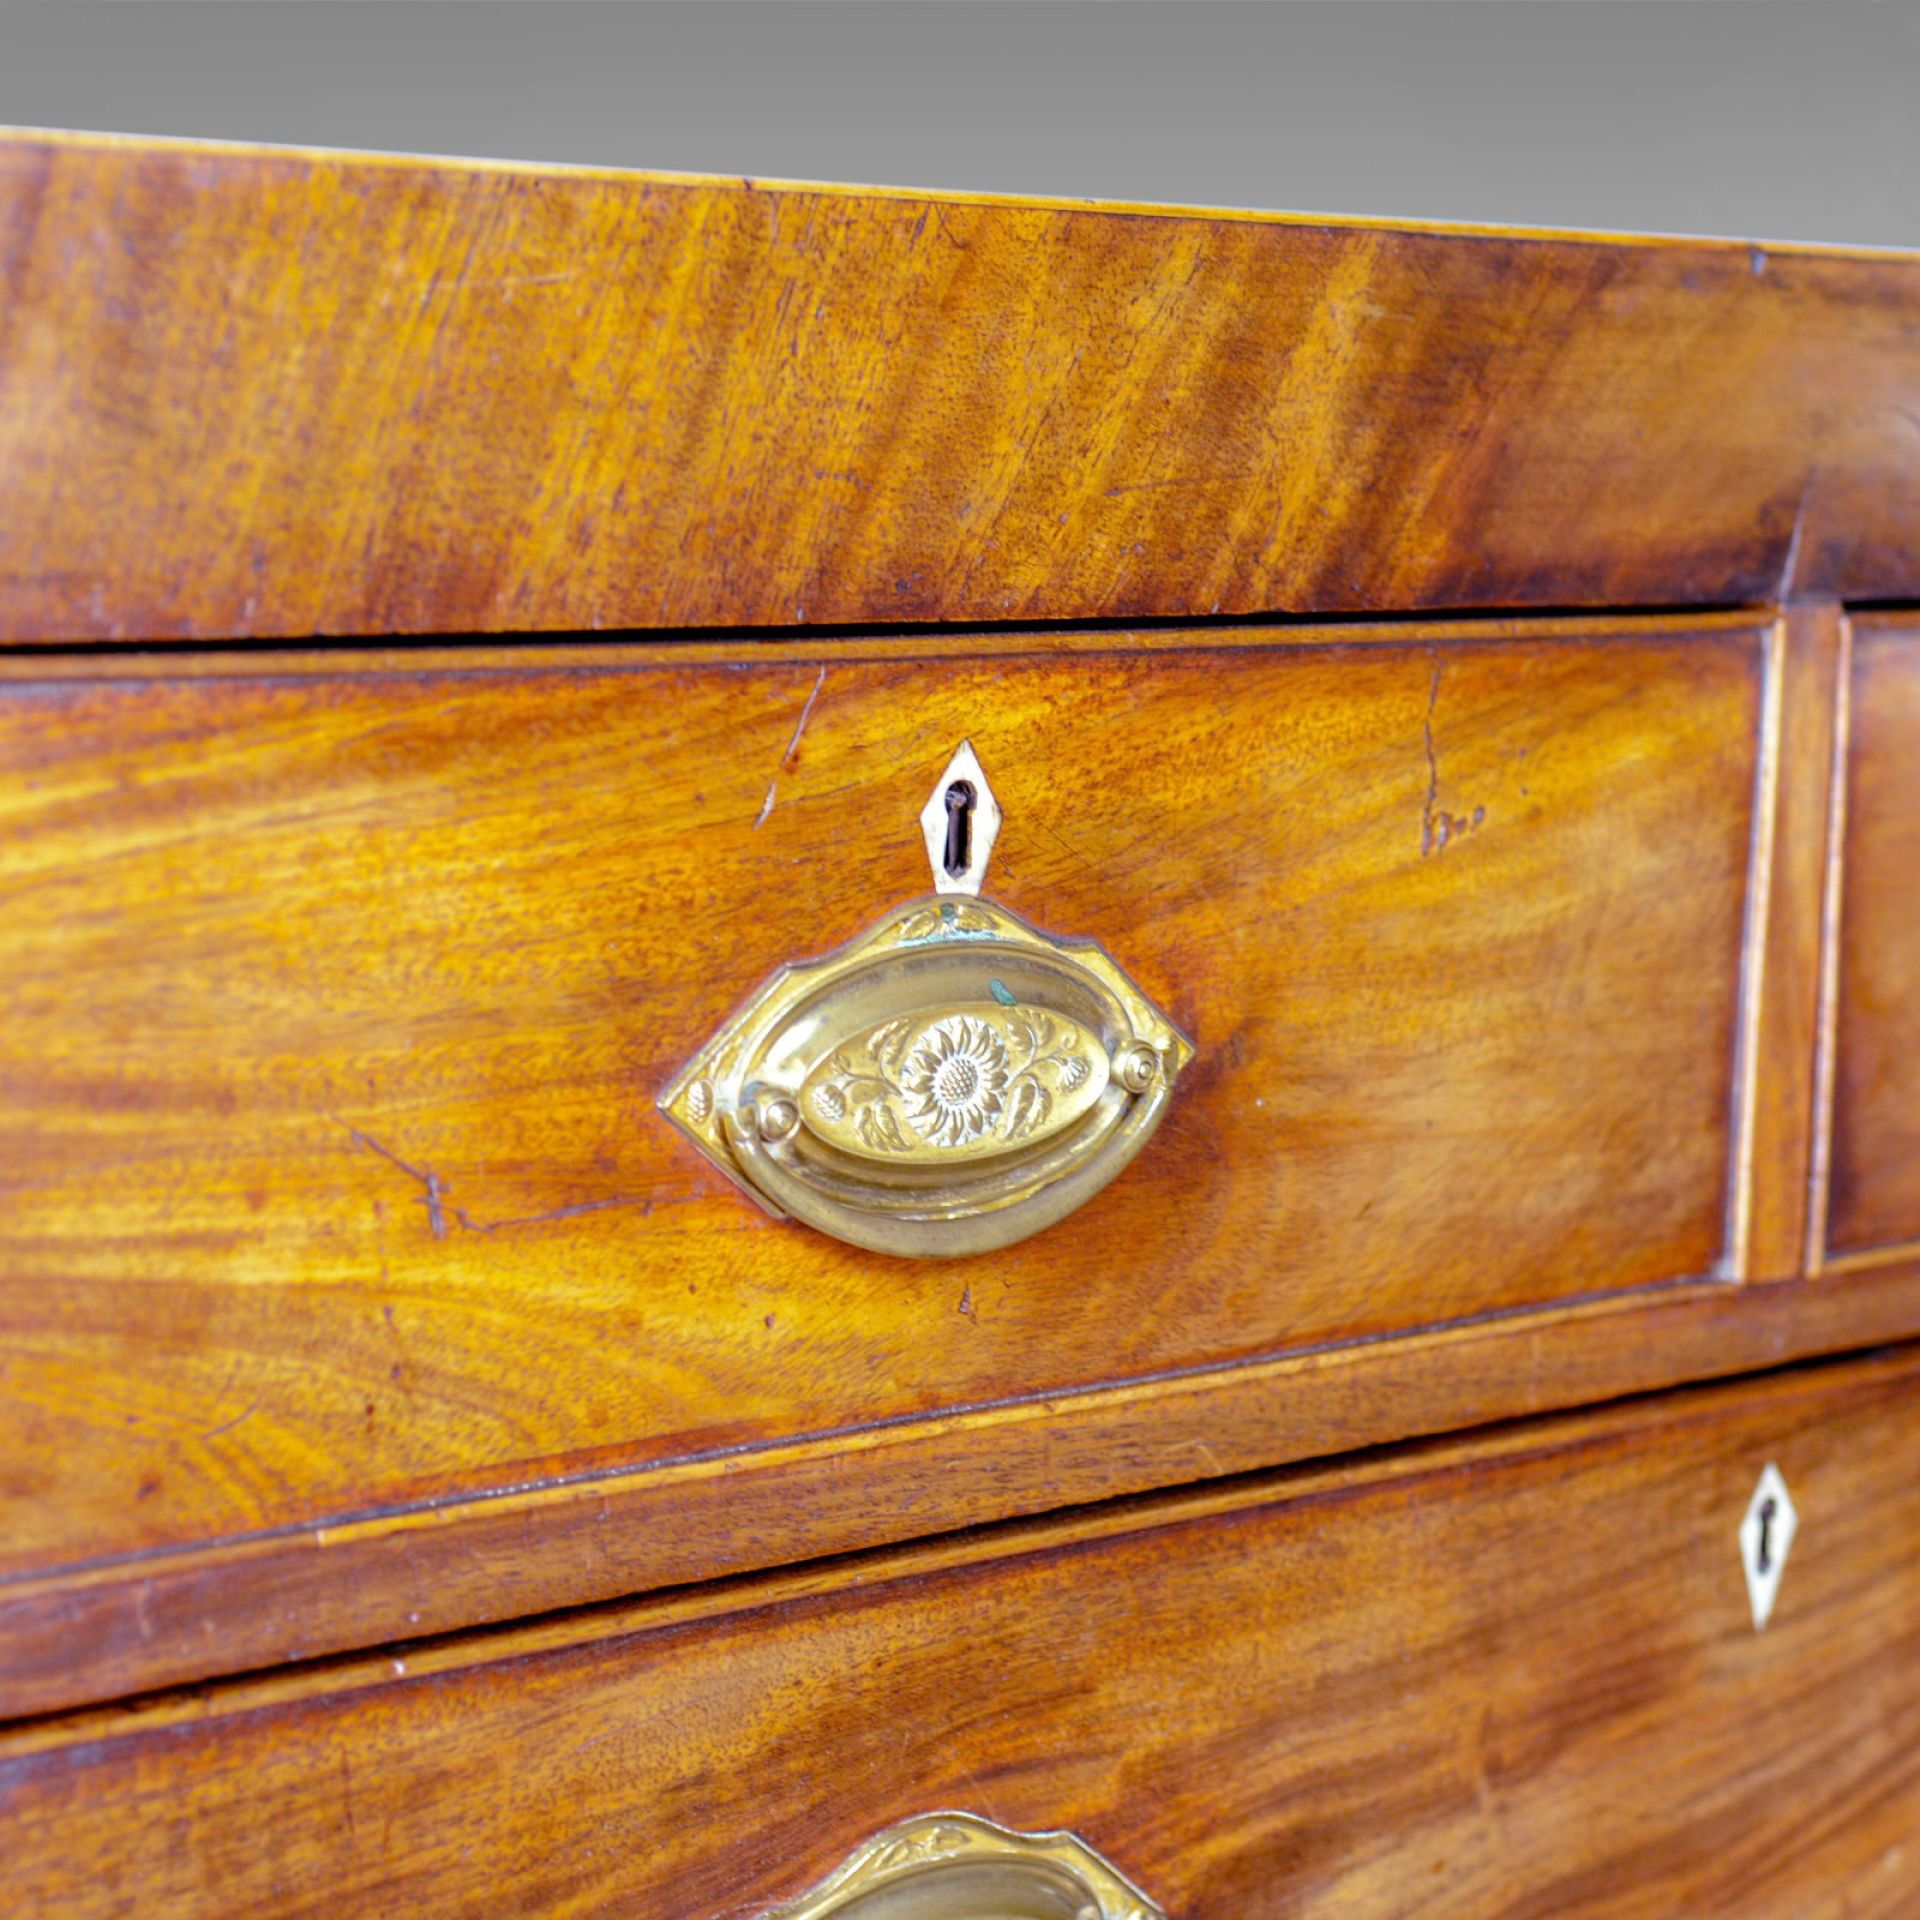 Antique Chest of Drawers, Manner of Sheraton, English, Georgian, Circa 1780